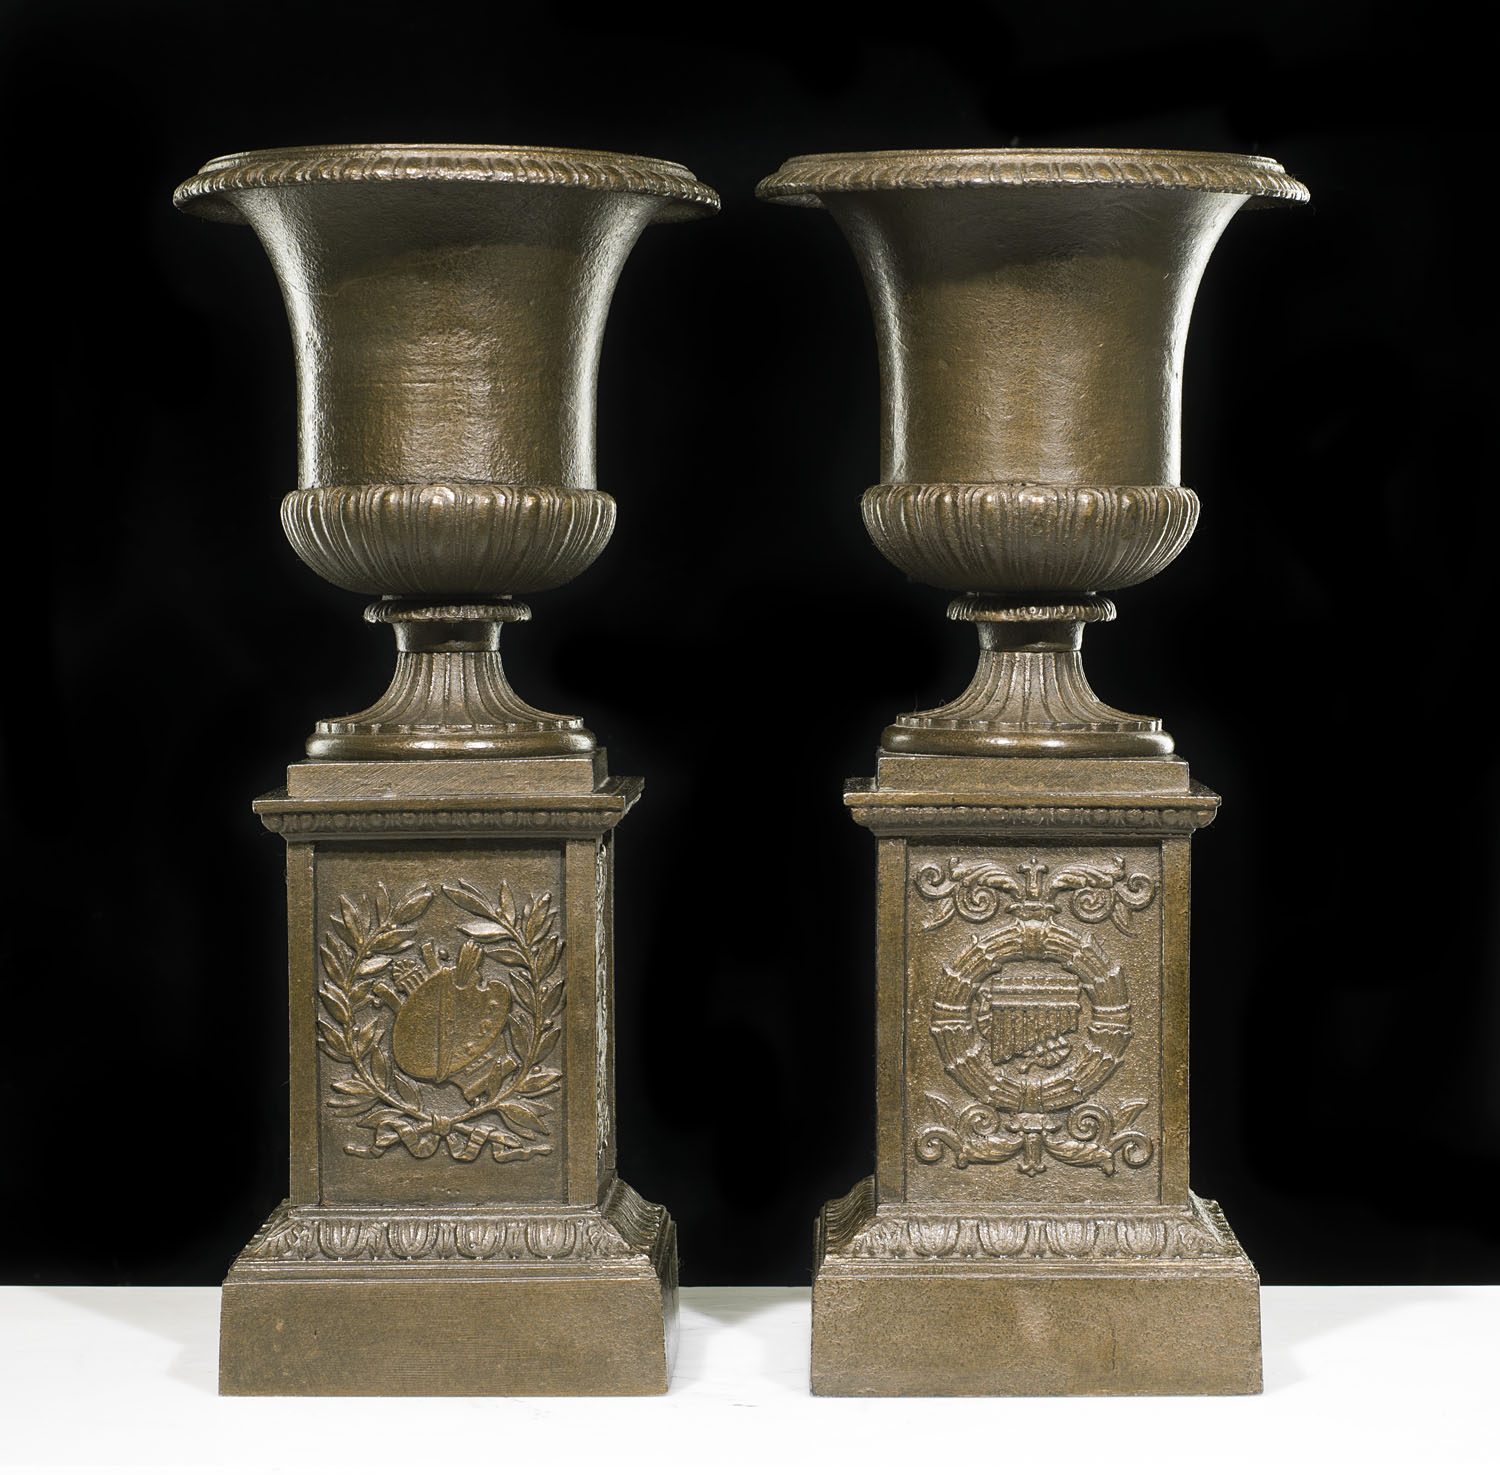 19th century pair of very small antique cast iron urns and plinths